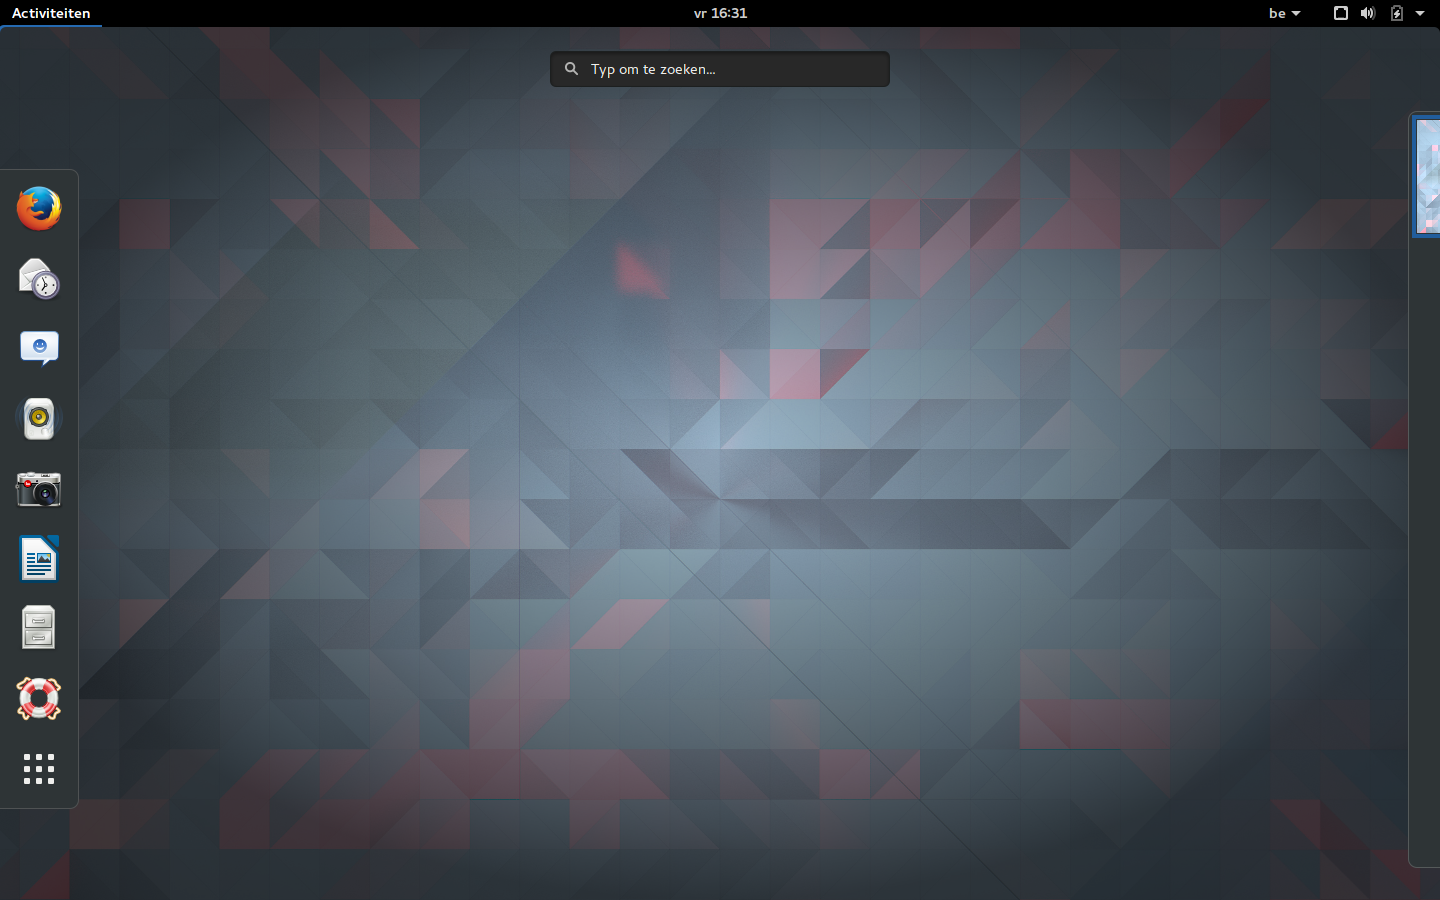 VirtualBox_Ubuntu Gnome_05_08_2016_16_31_08